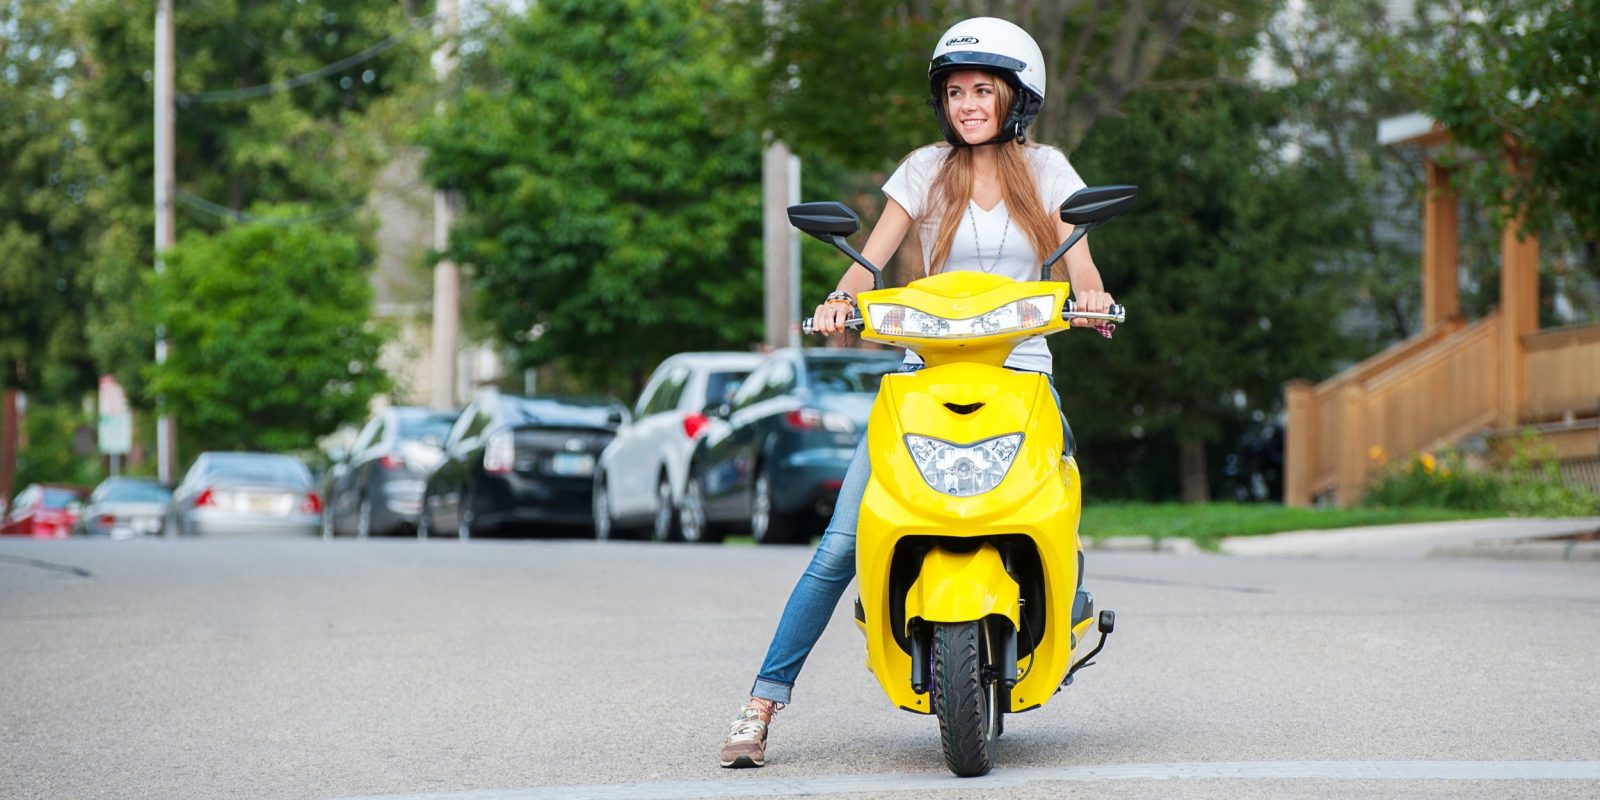 Flux Mopeds Is The Us Based Affordable Electric Scooter Company You Ve Never Heard Of